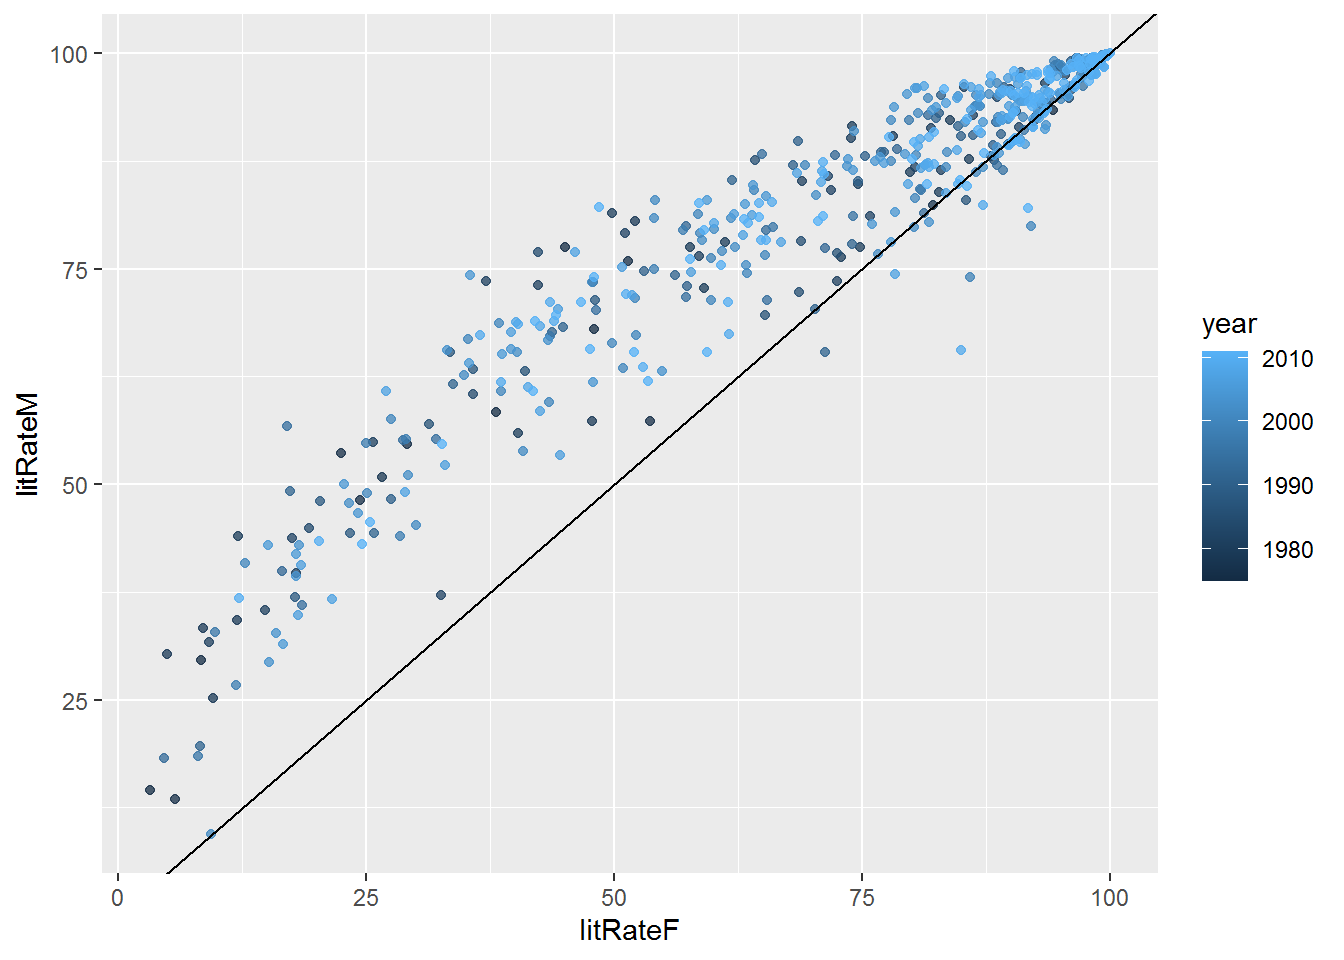 The plot shows that the higher the female literacy rate, the higher the male literacy rate.  Additionally, across the board, the male literacy rate is higher than the female literacy rate (as referenced by the y=x line).